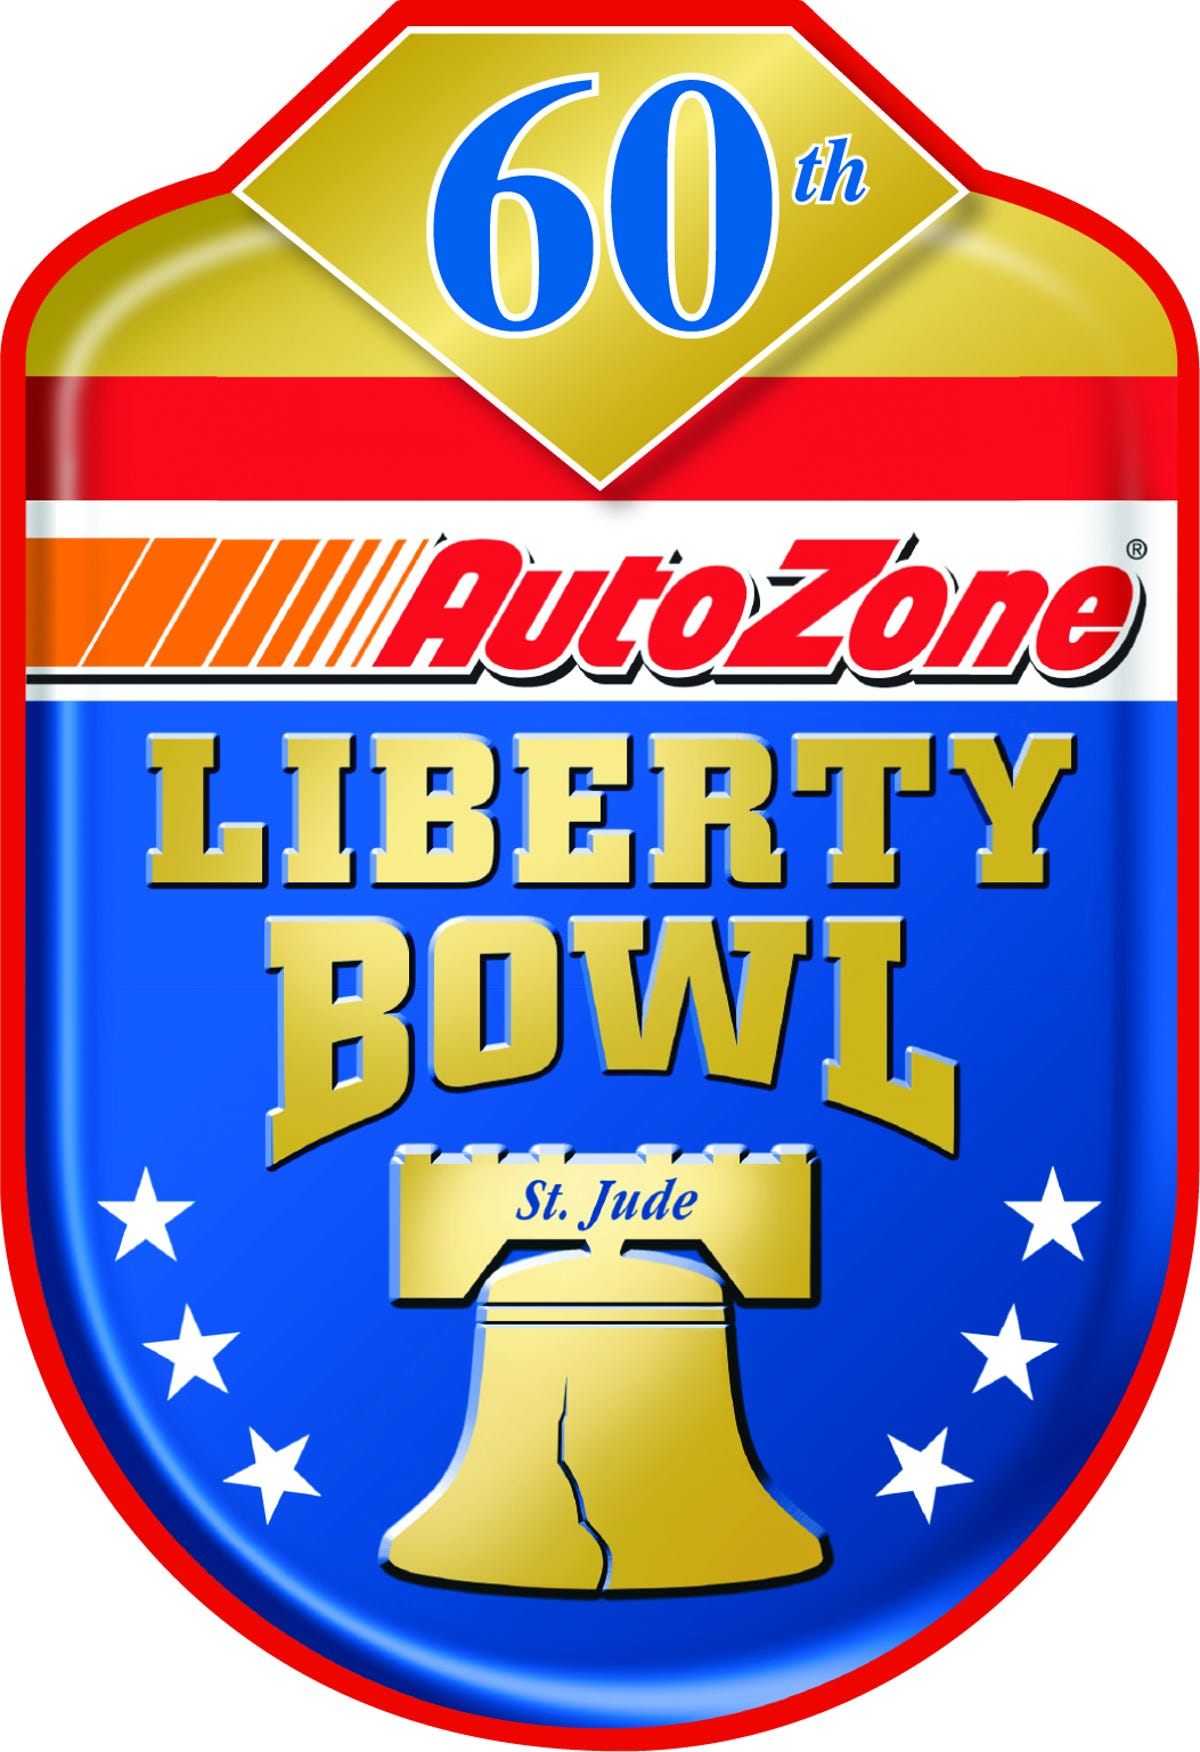 60th AutoZone Liberty Bowl president announced